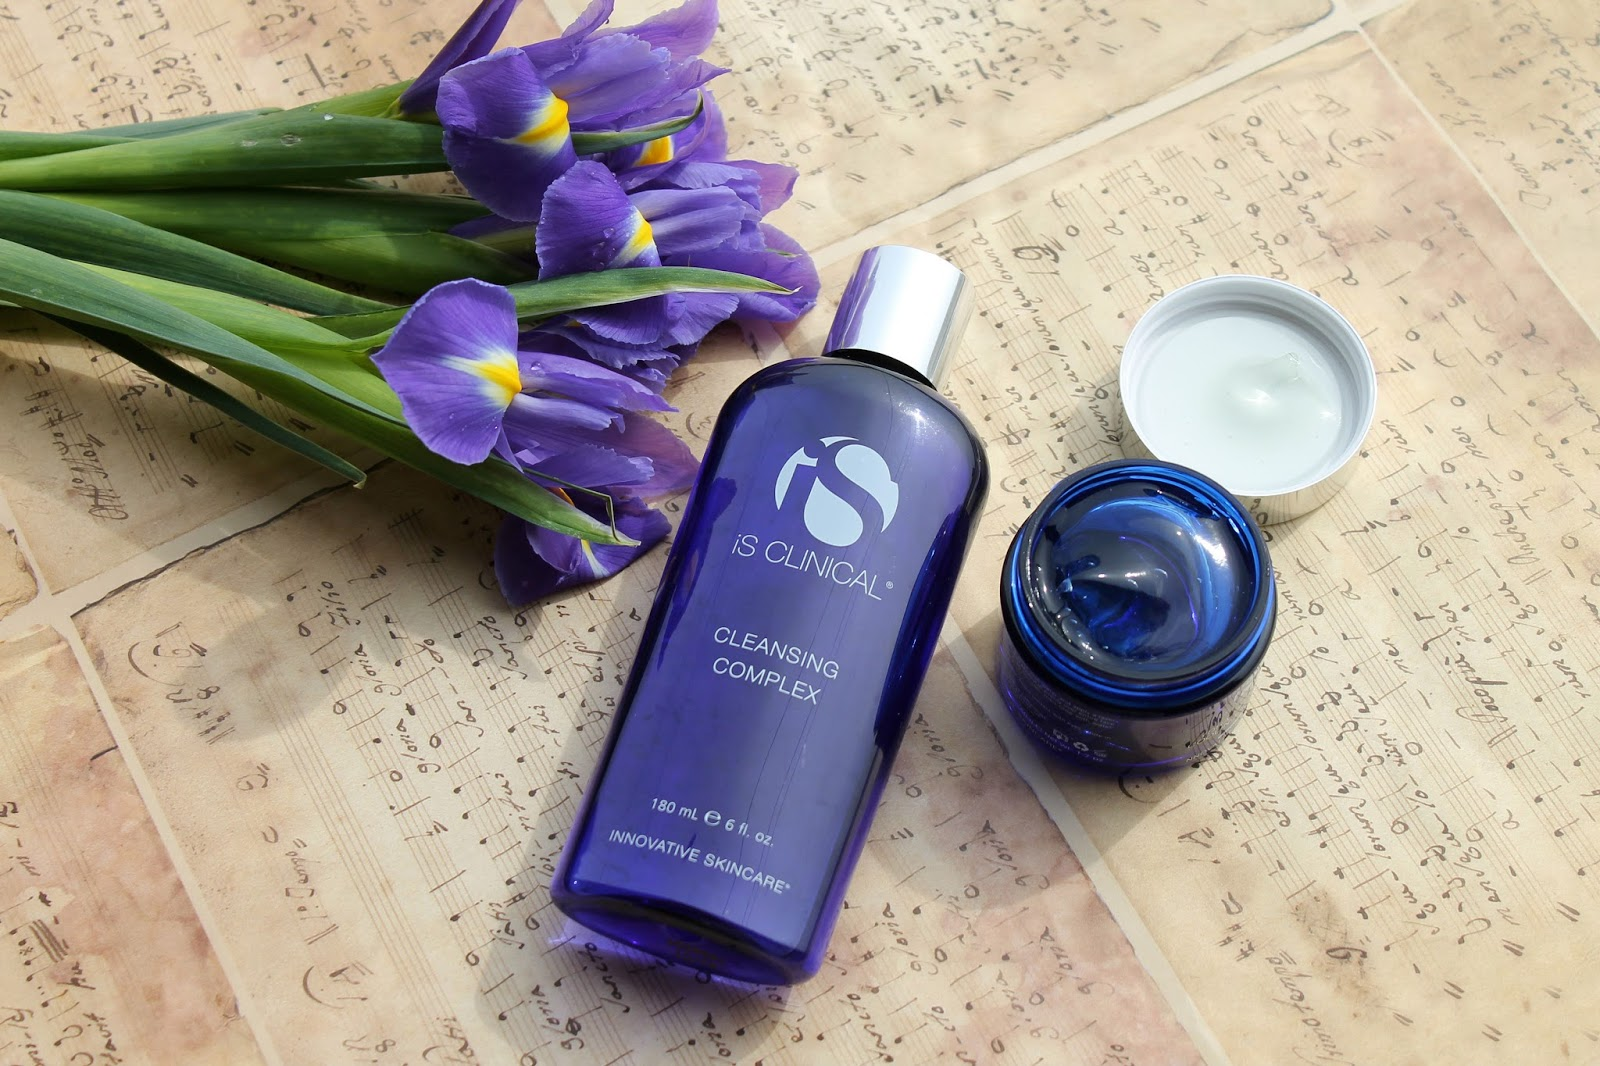 is clinical cleansing complex review